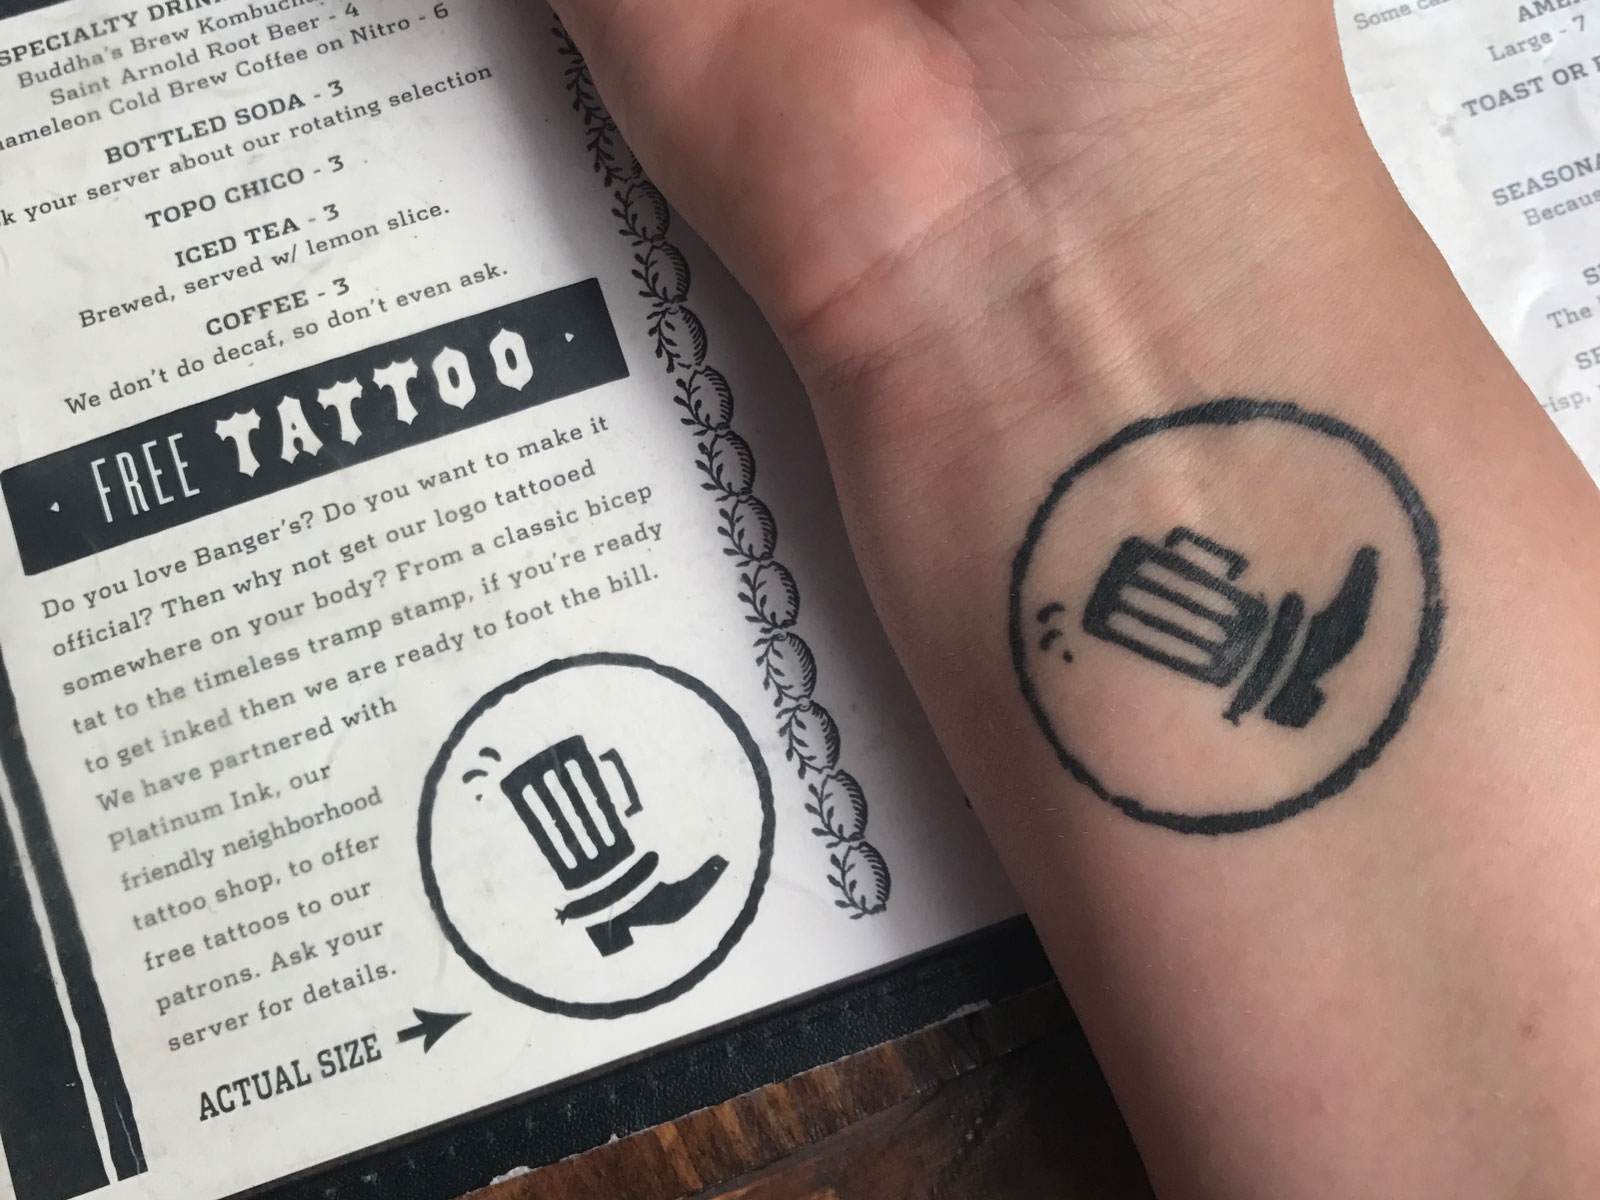 1372c8ca7 Thousands of People Have This Restaurant Logo Tattooed on Their Bodies |  Food & Wine